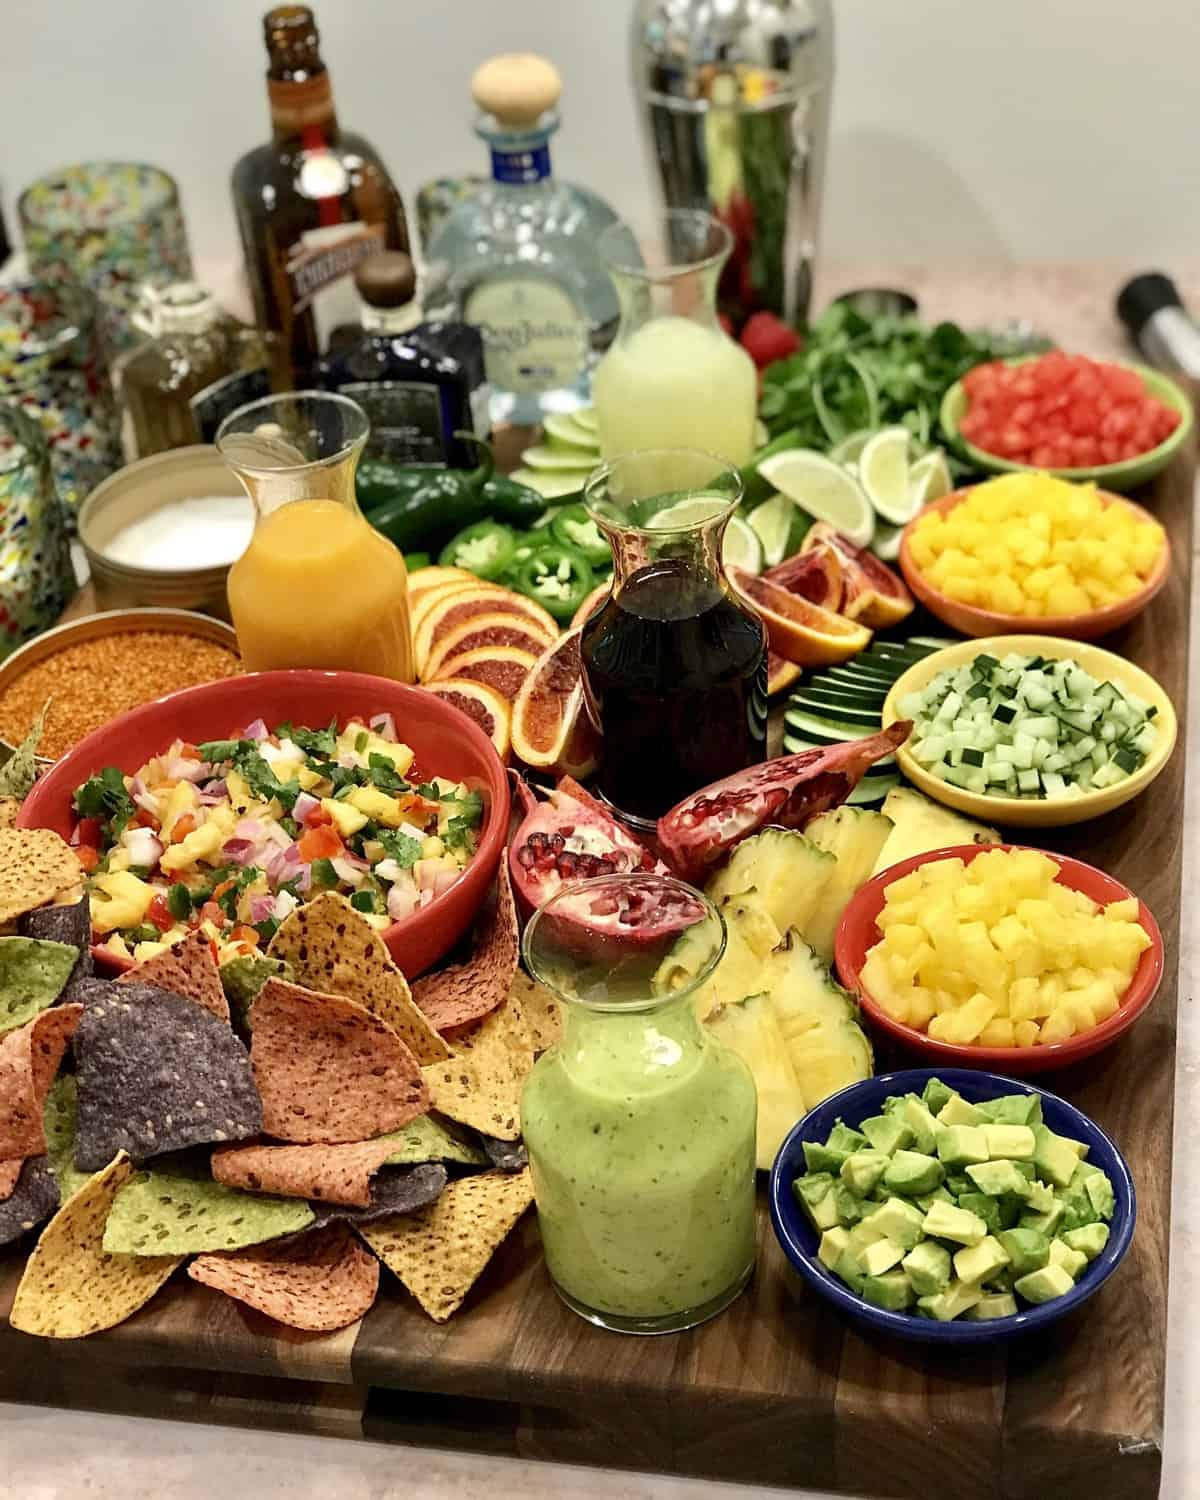 Make-Your-Own Margarita Board by The BakerMama